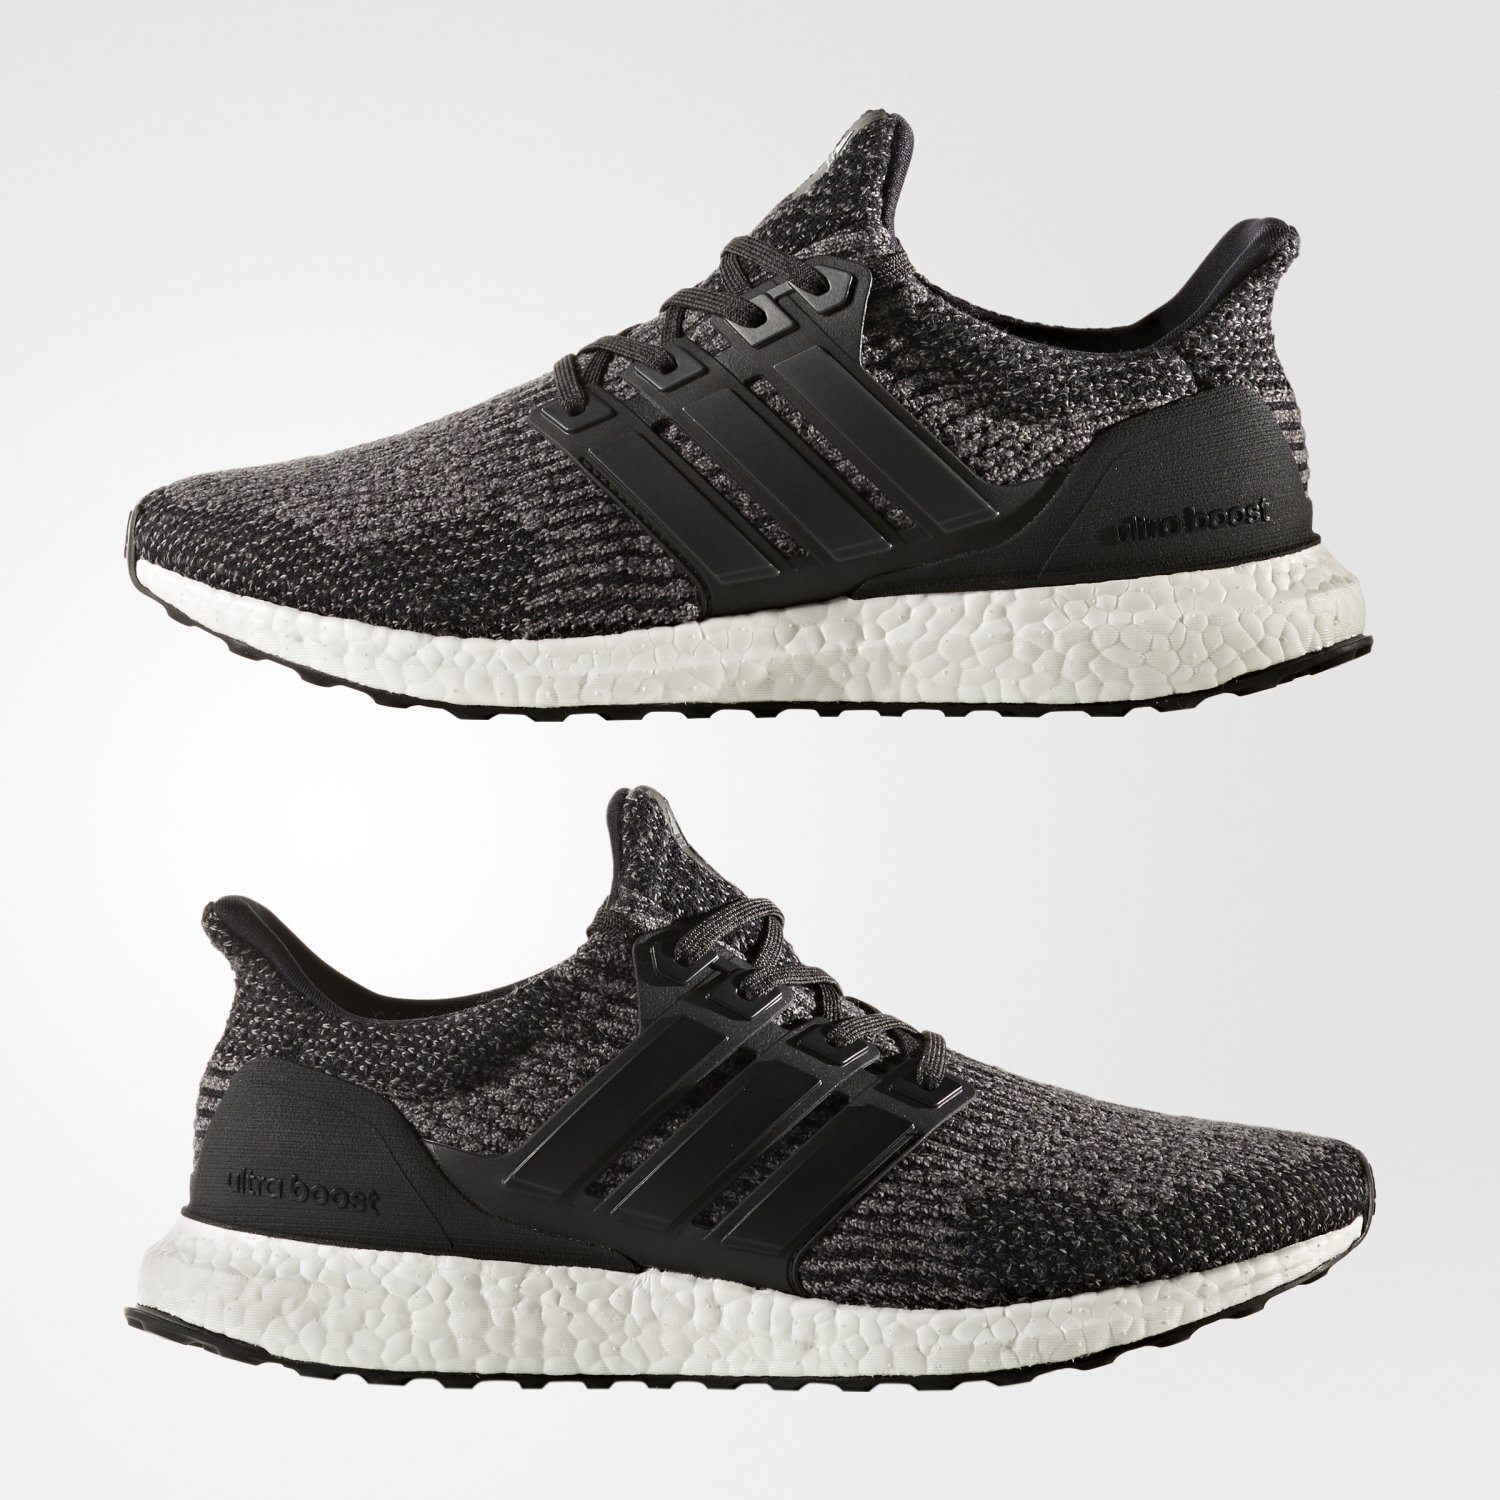 adidas-ultra-boost-wool-S80731-release-20171006